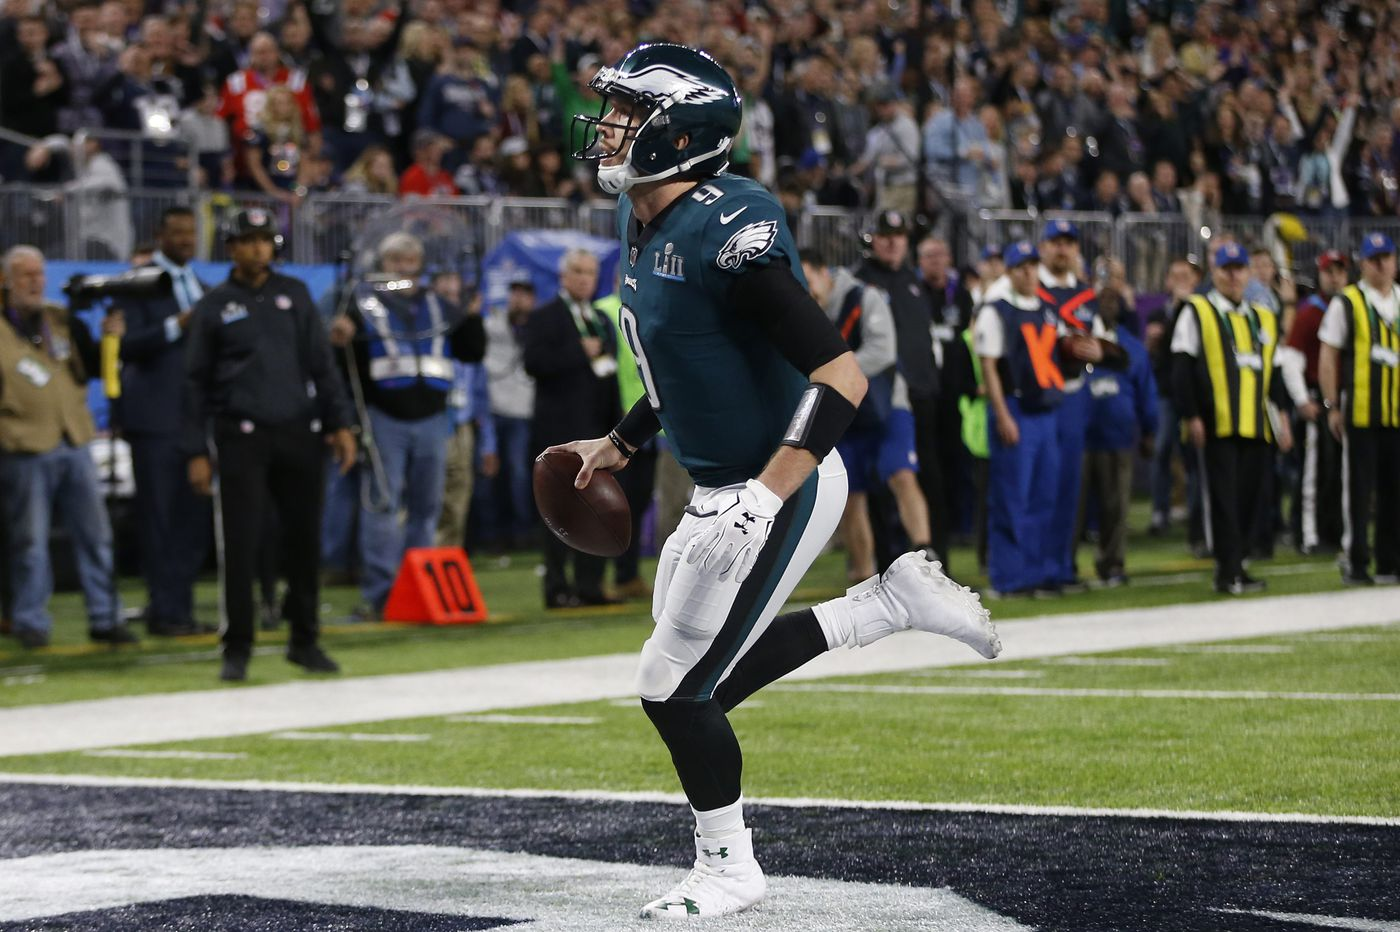 Eagles Super Bowl hero Nick Foles expected to sign with Jaguars, sources say